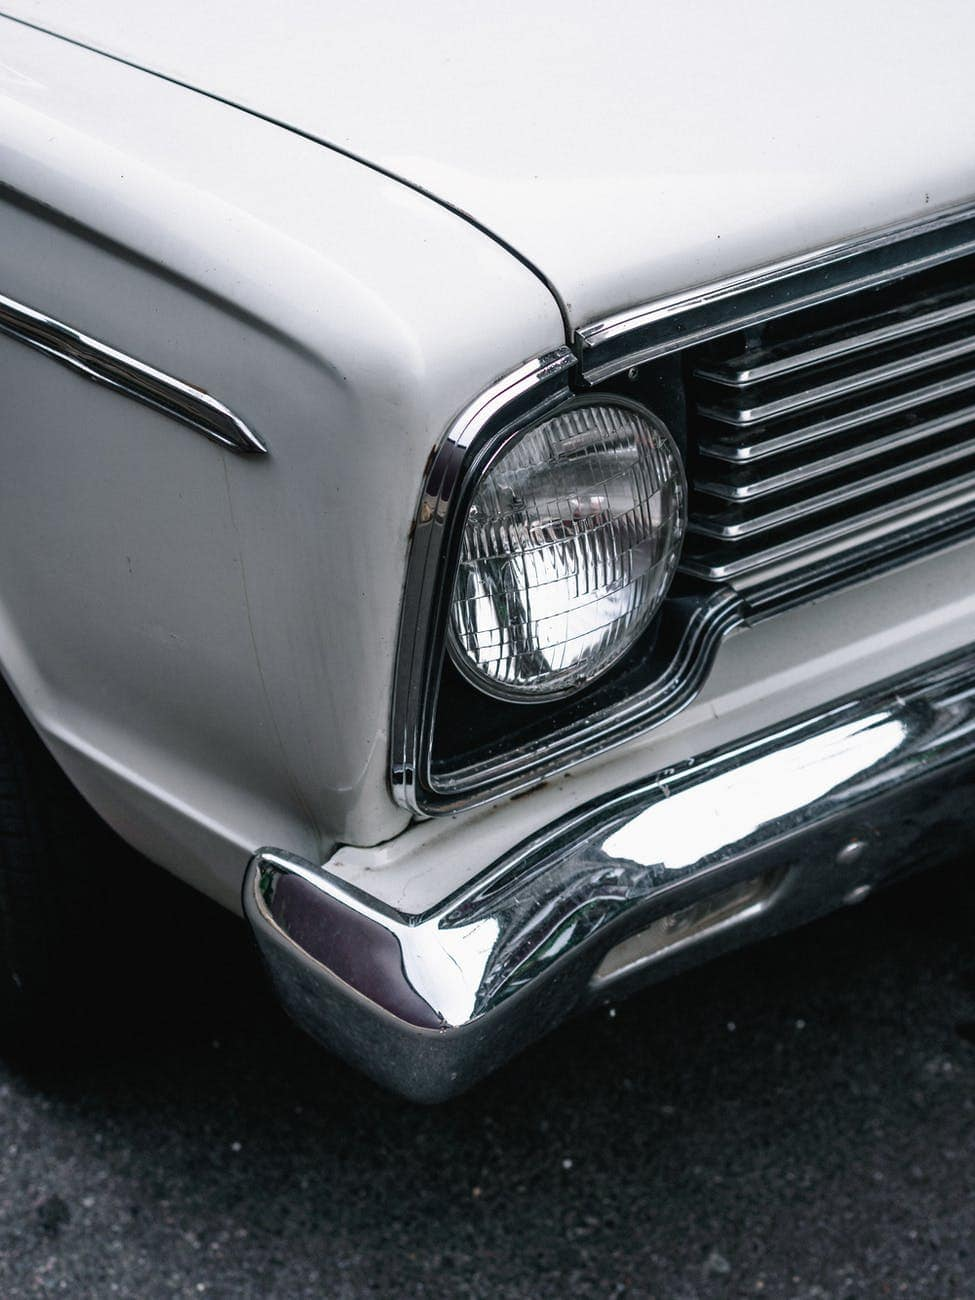 Investing In Classic Cars: Are They Worth It?